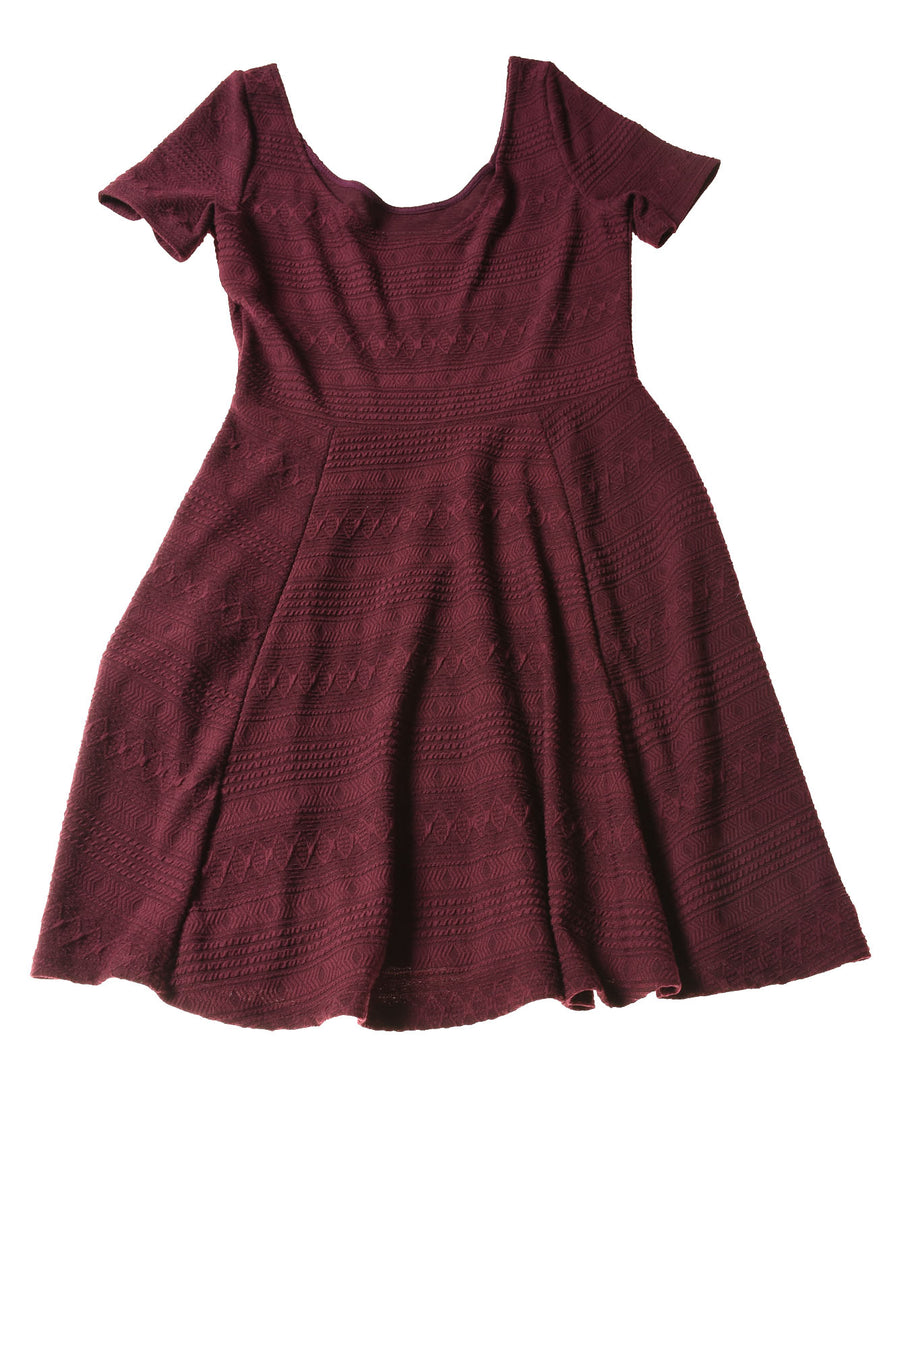 NEW Divided Women's Dress Small Maroon